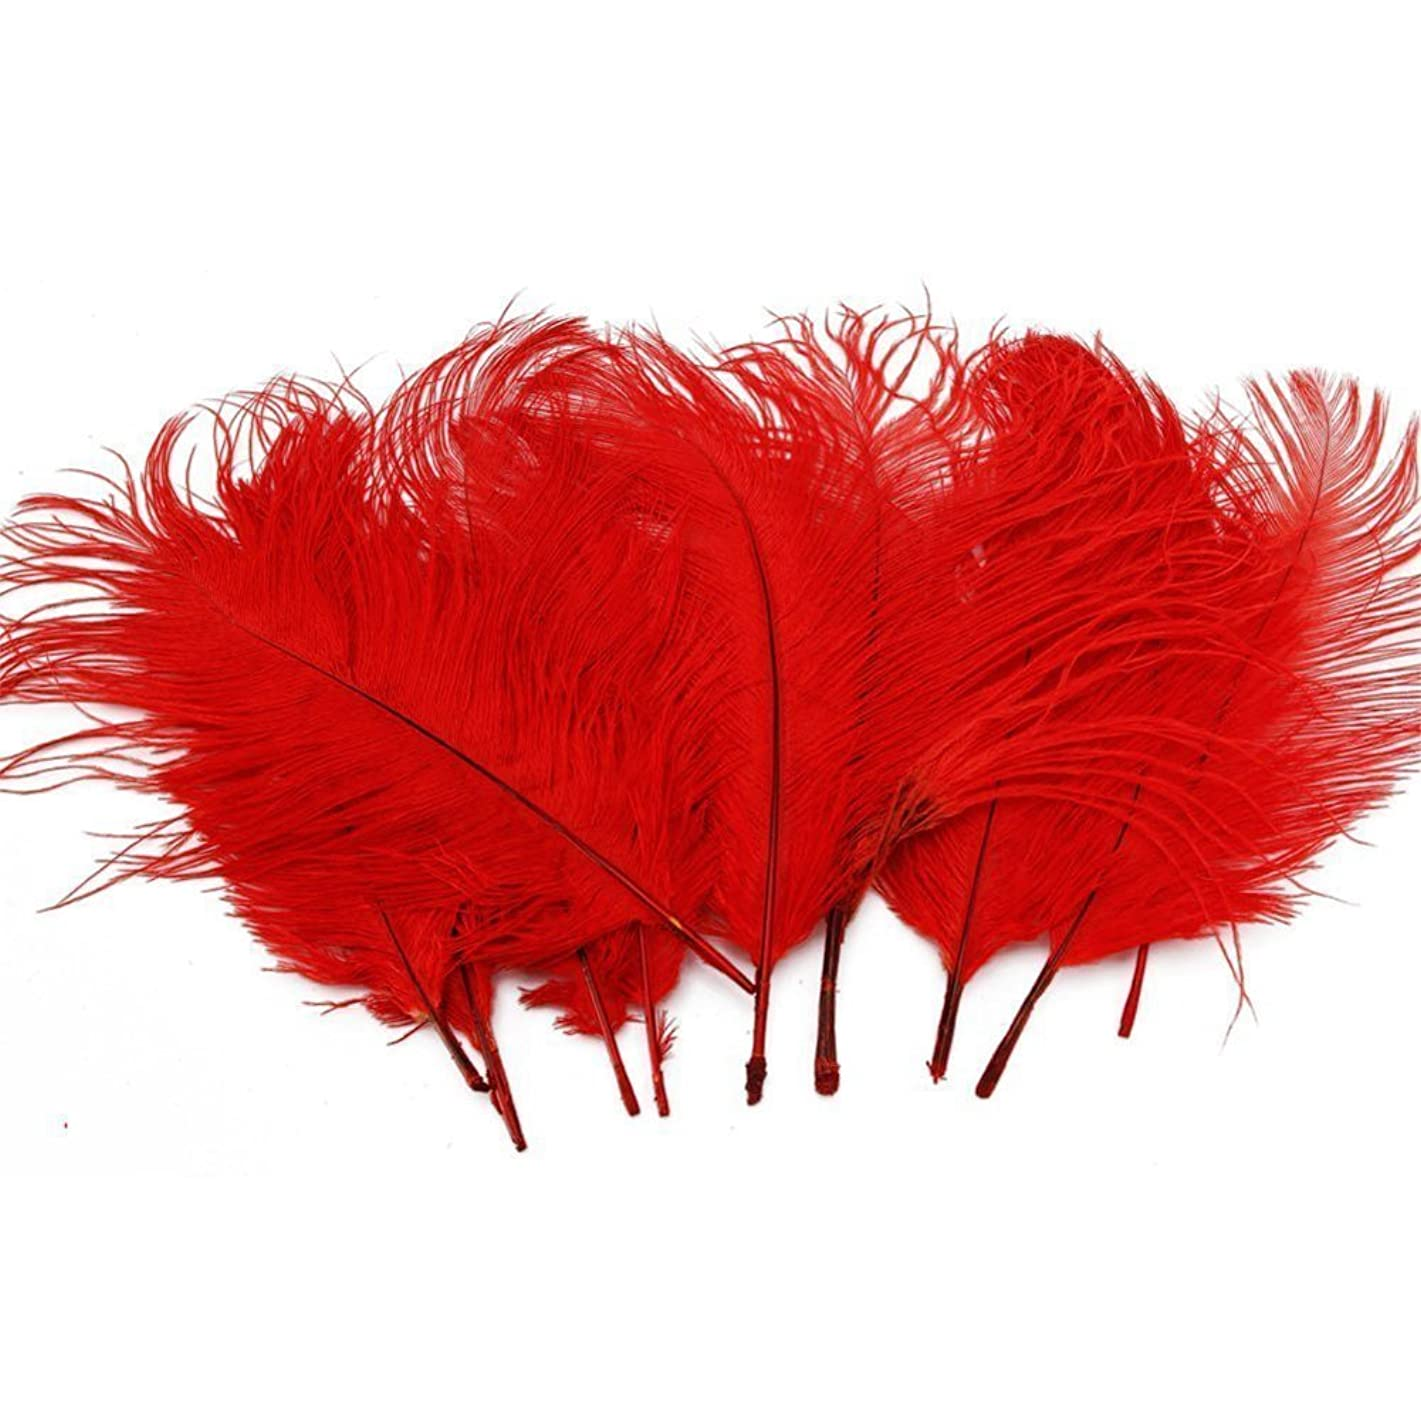 Sealike 50 Pcs 10-15cm Real Natural Home Decor Ostrich Feather Great Party Wedding Party Home Hair Decorations with a Stylus(Red)